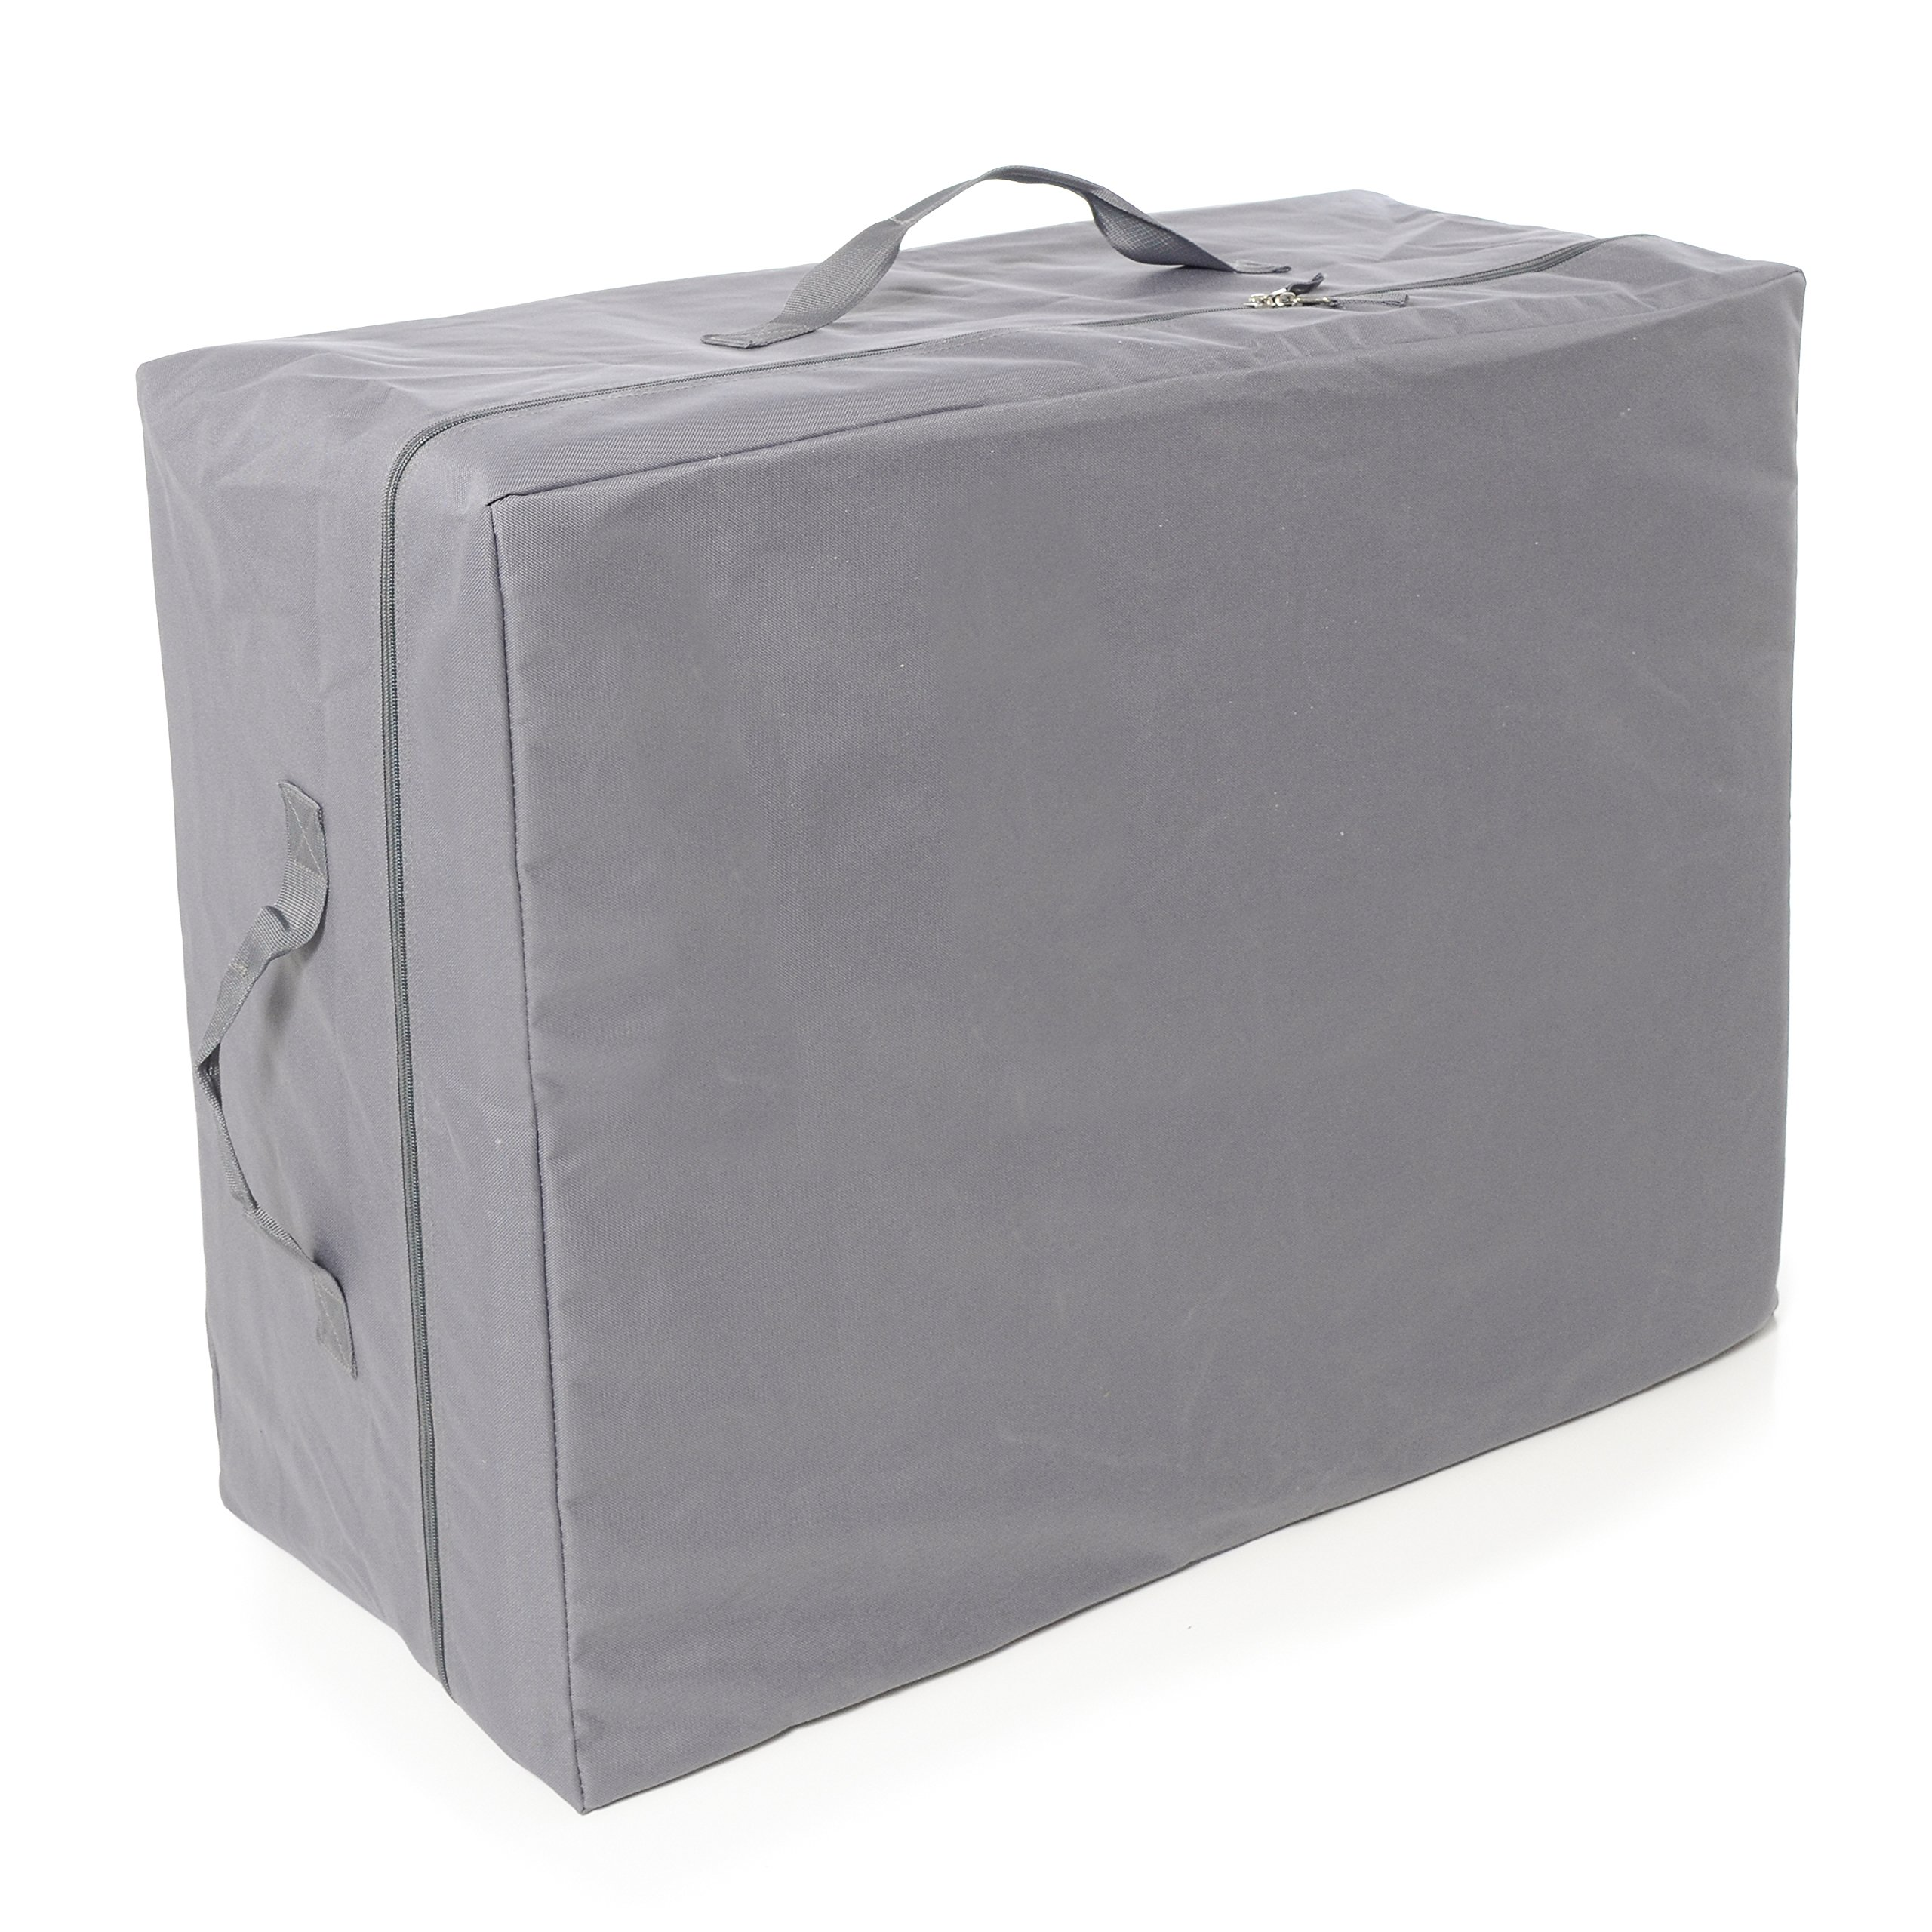 Carry Case for Milliard Tri-Fold Mattress 4 inch Twin (Does Not Fit 6 inch)